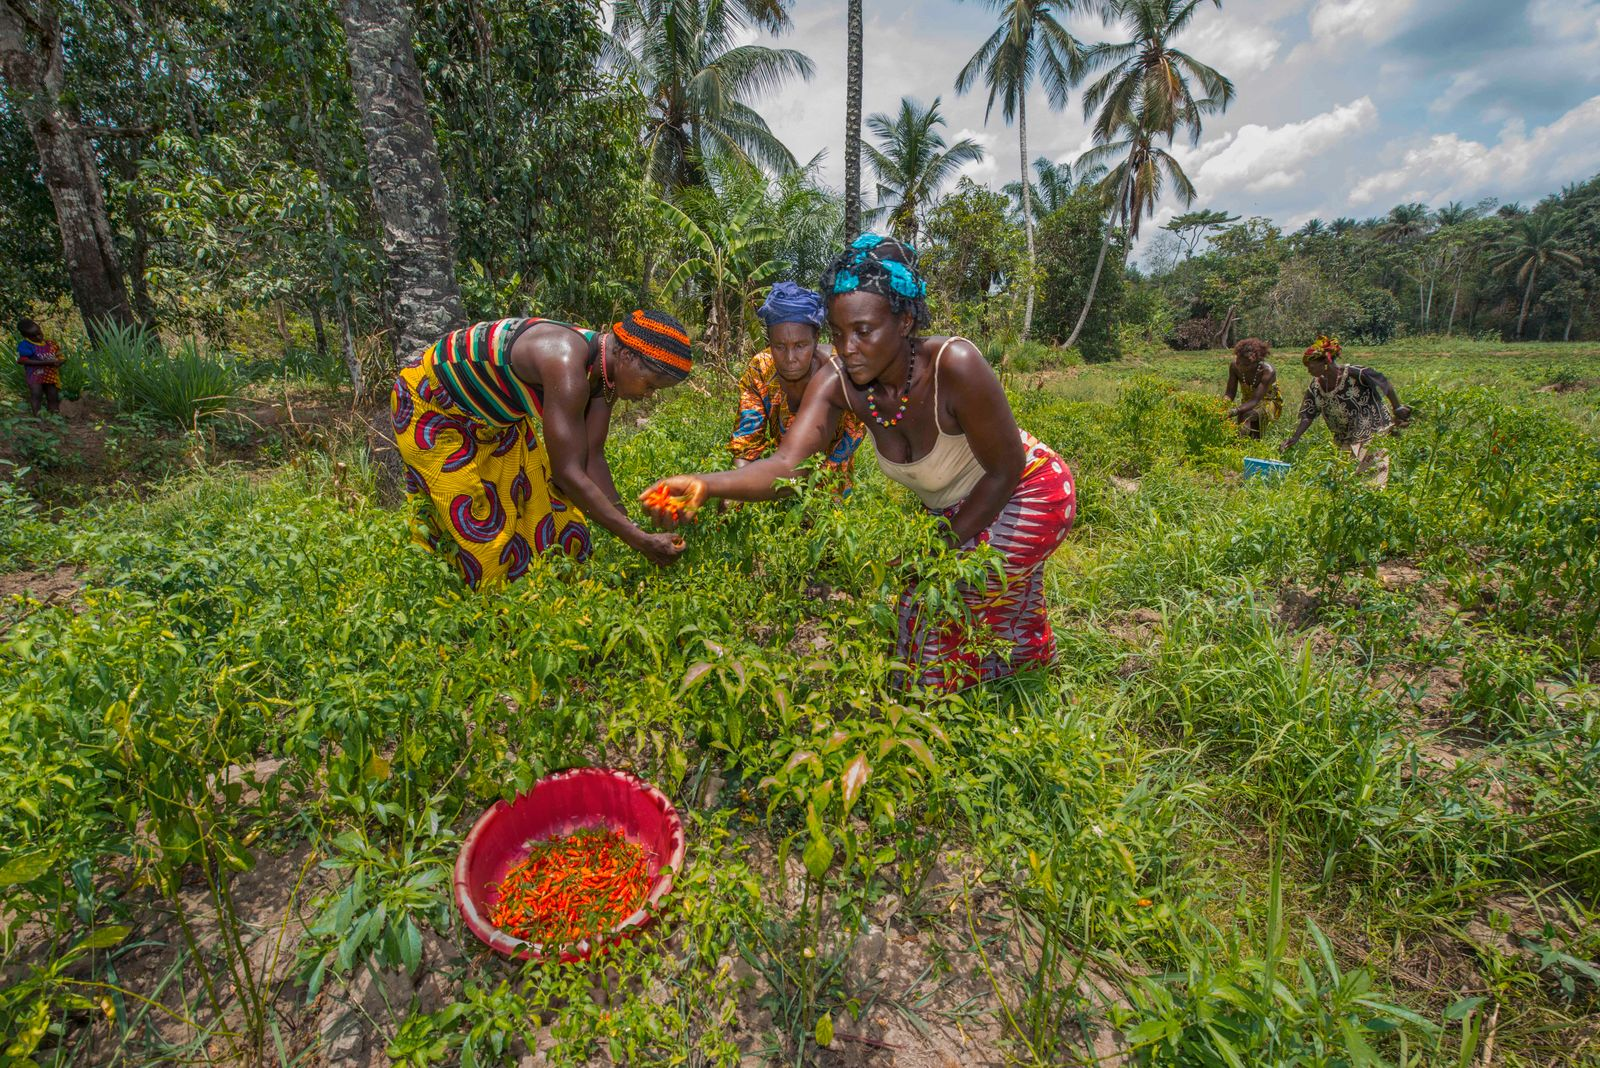 April 30, 2014, Mafinda, Sierra Leone: Agricultural Farmers working in a field in Mafinda, Sierra Leone. This swampland